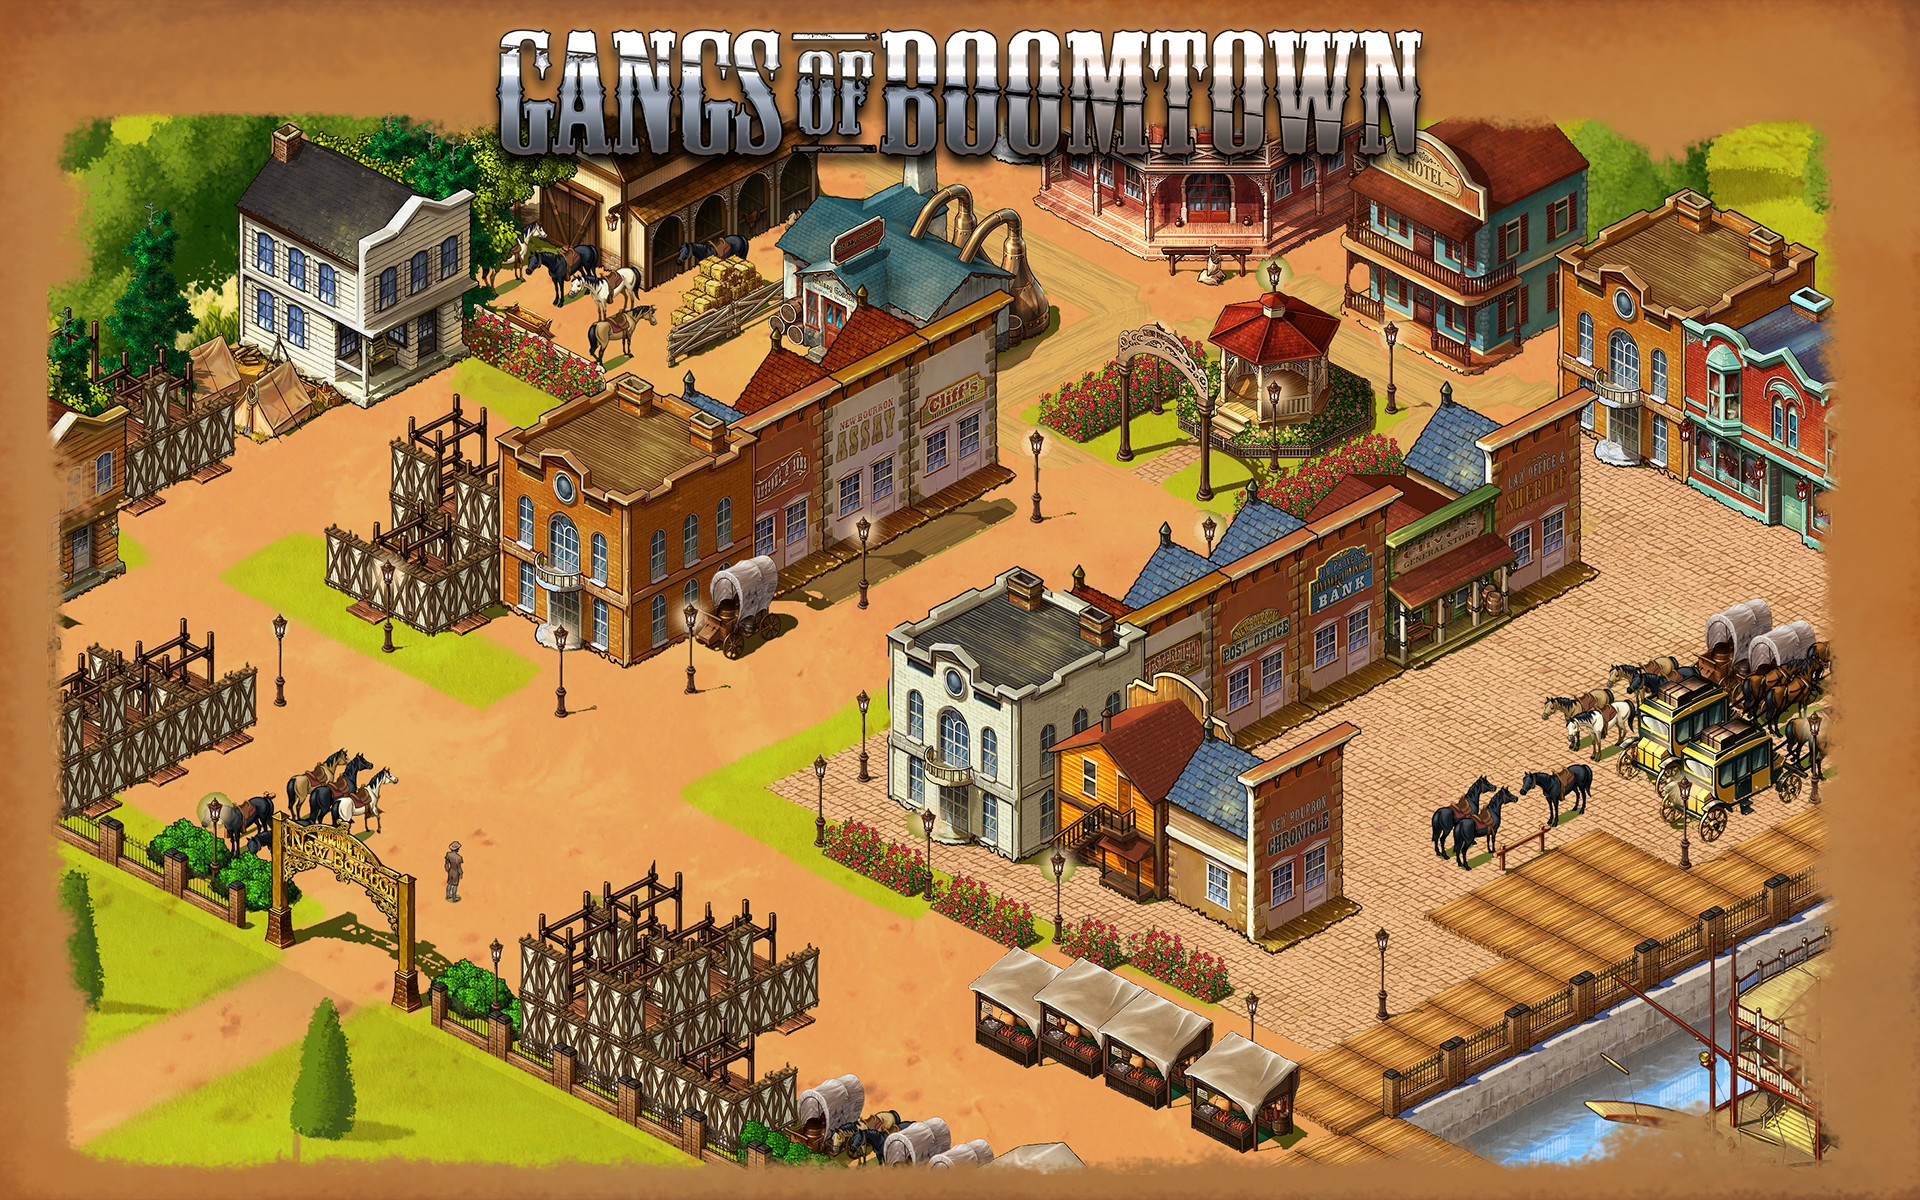 Gangs of Boomtown - Digital Chocolate, 2011Social game take on the Spaghetti Western theme. Boomtown was an idyllic and peaceful settlement on the edge of the frontier – until the ruthless Assassins Gang rode into town and wreaked havoc.